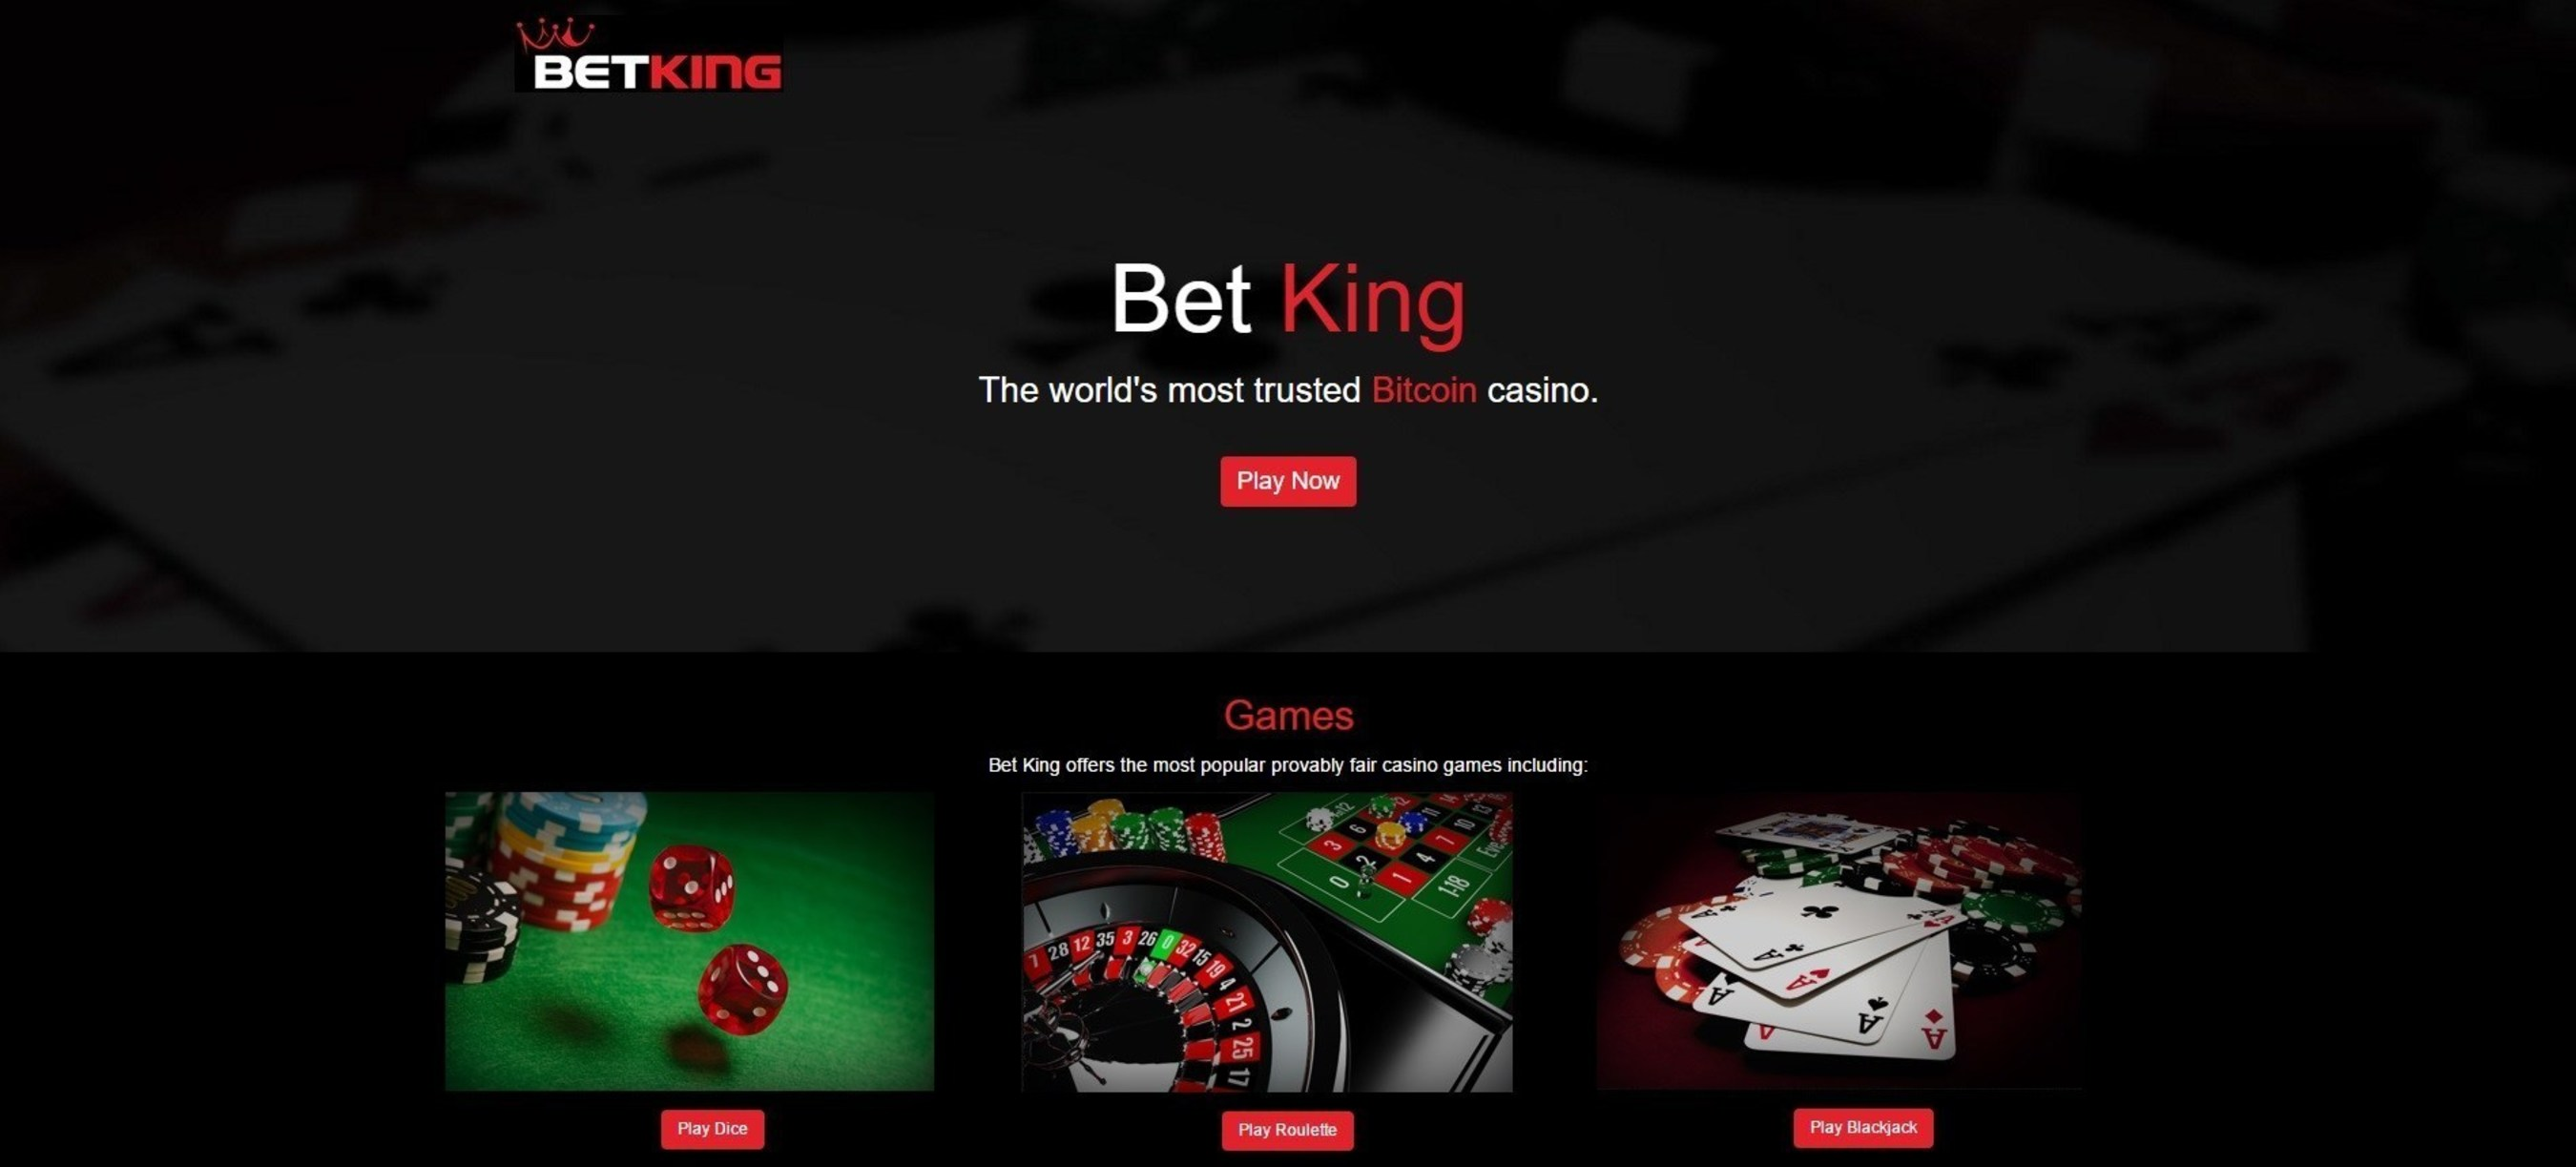 Crowdfunded Bitcoin Casino Bet King Paid Out Over 15 Million USD During 2015